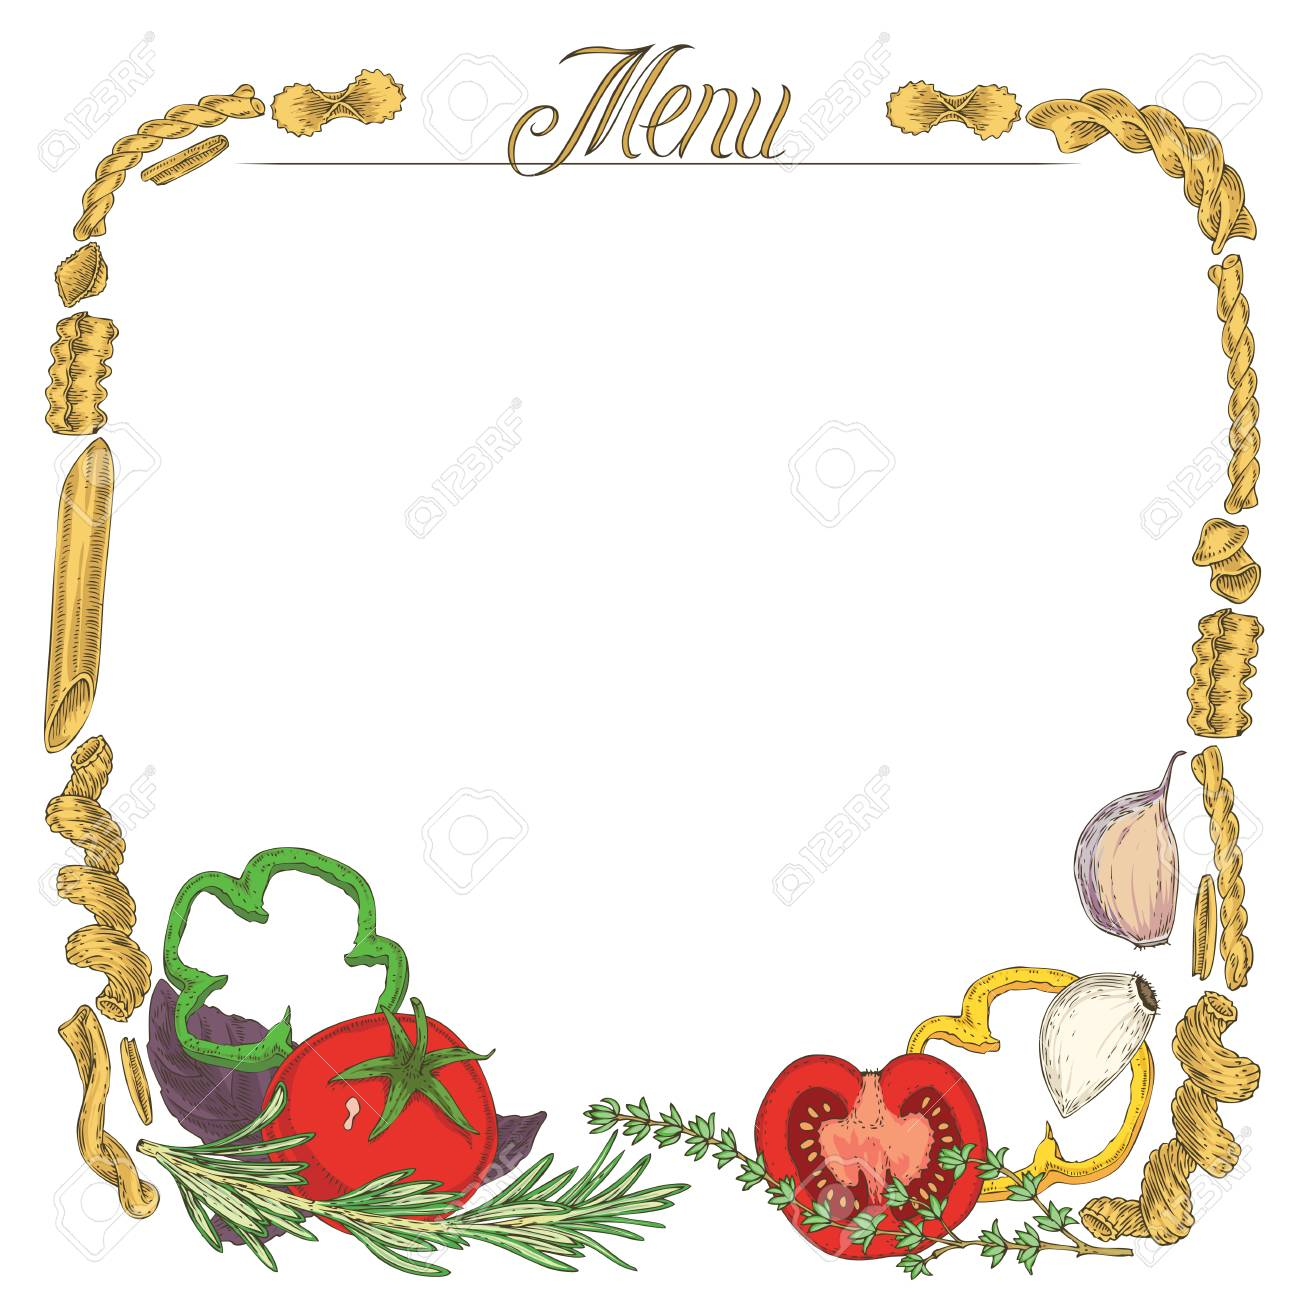 template blank menu page with border. italian pasta, tomato and